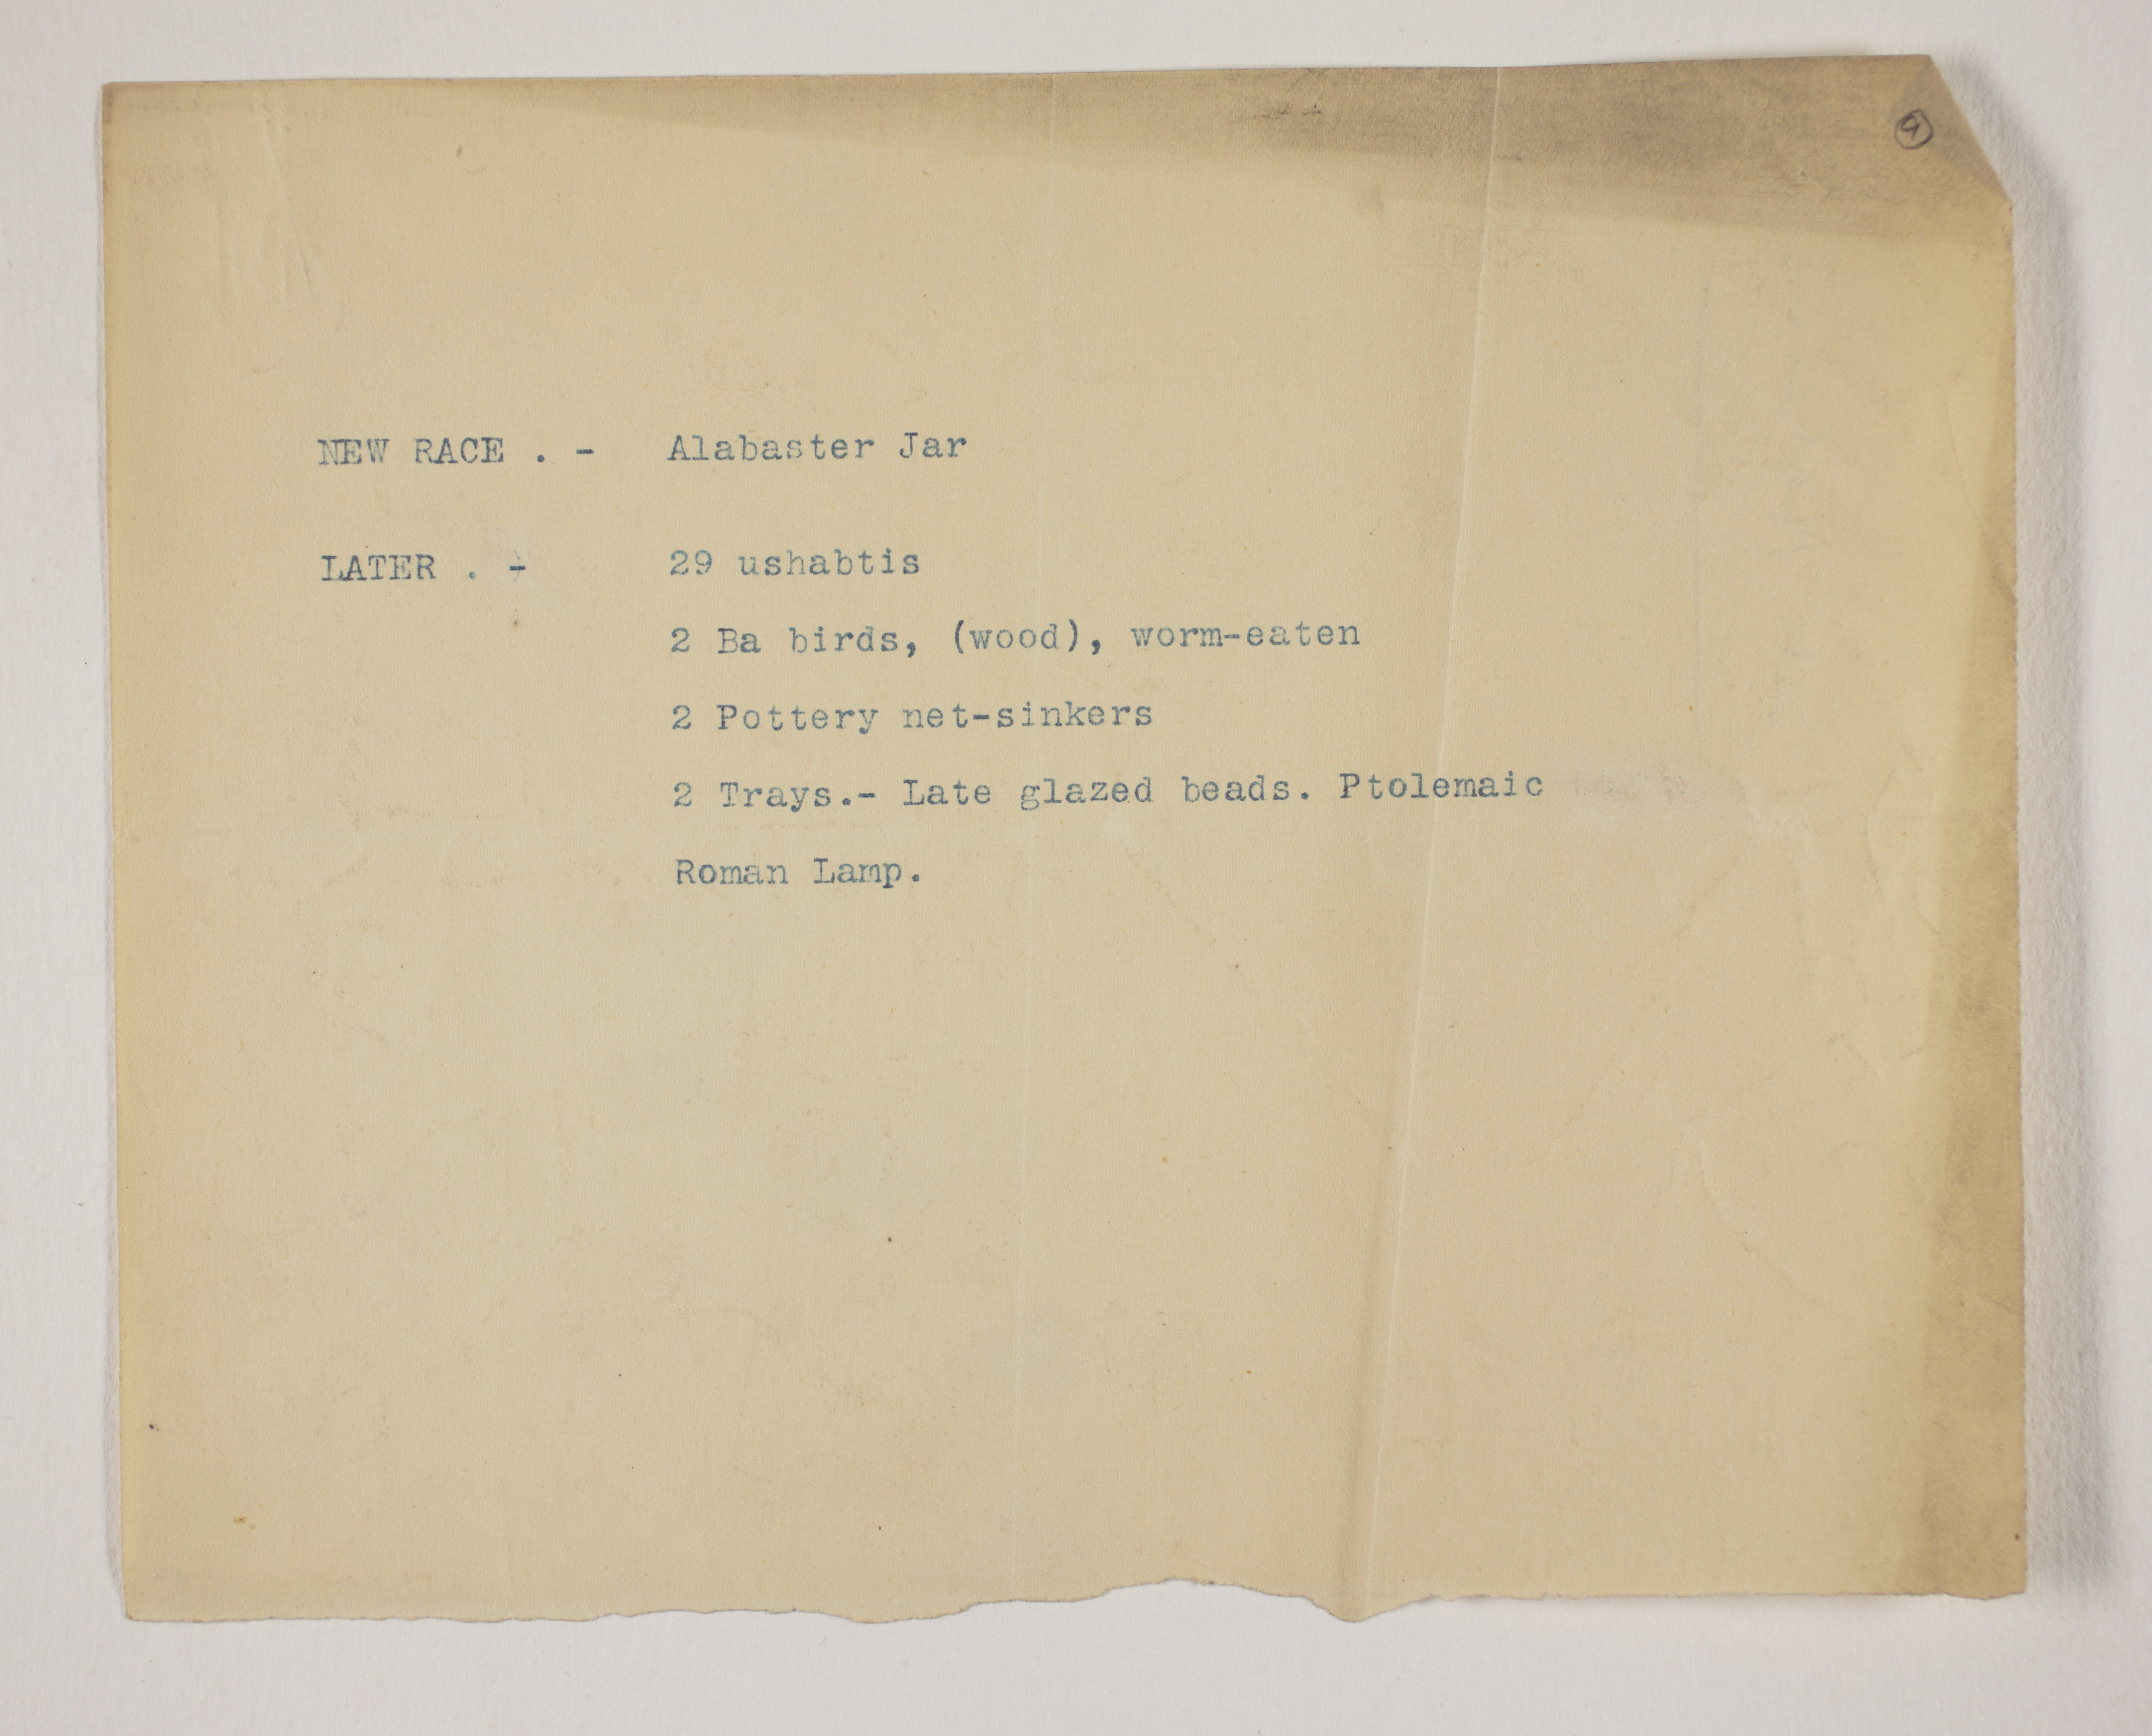 1899-1900 Abydos Receipt from institution PMA/WFP1/D/8/8.2